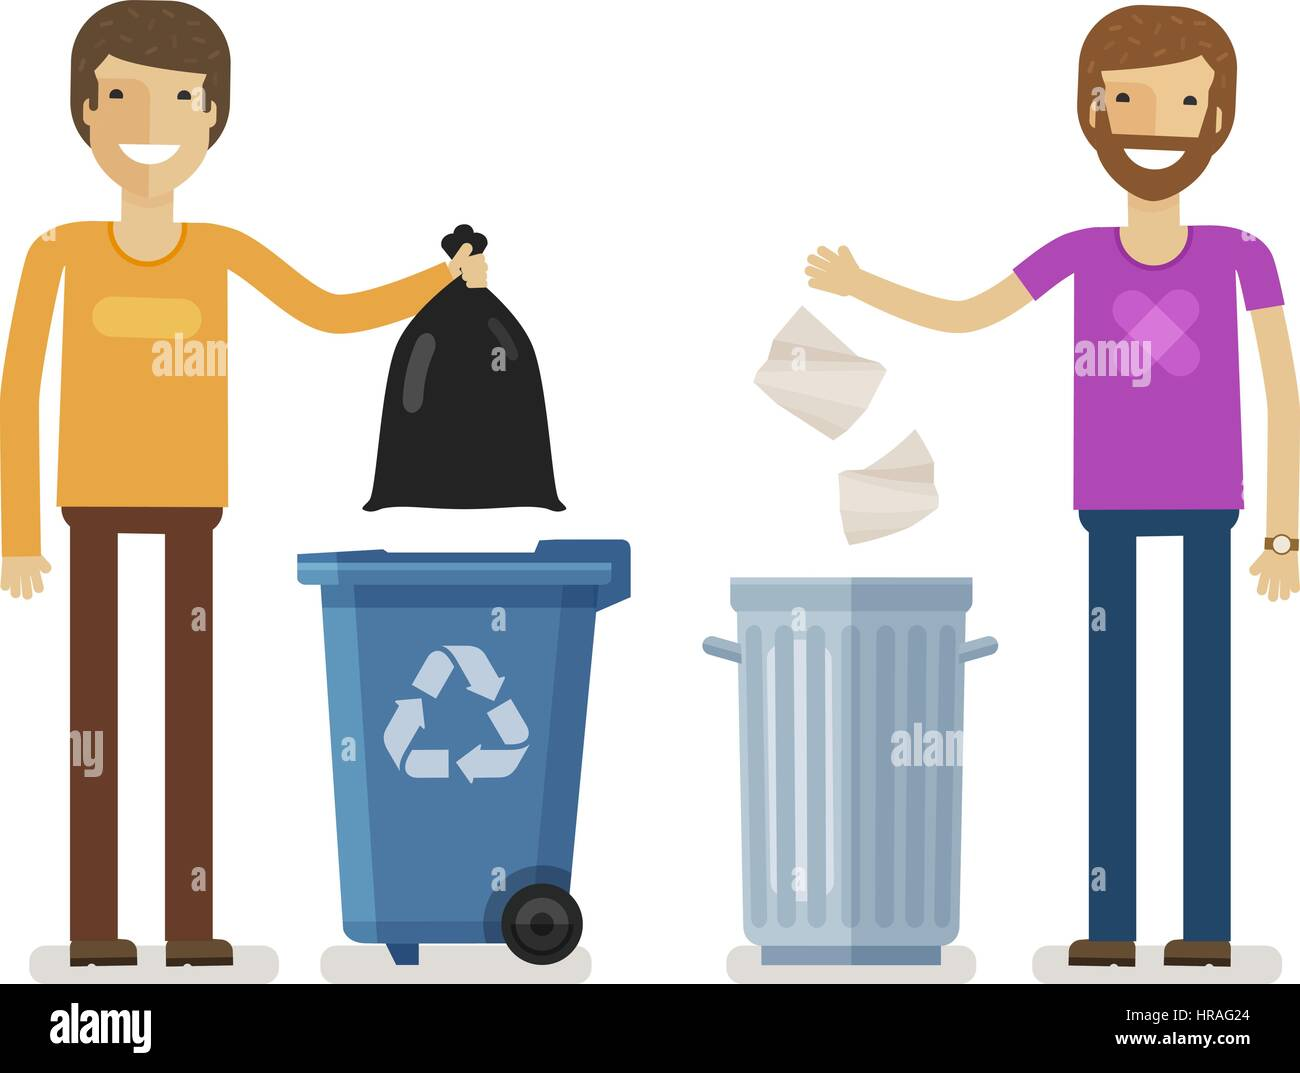 Human, man throws rubbish in garbage bin. Volunteering people, ecology, environment concept. Flat characters vector - Stock Image